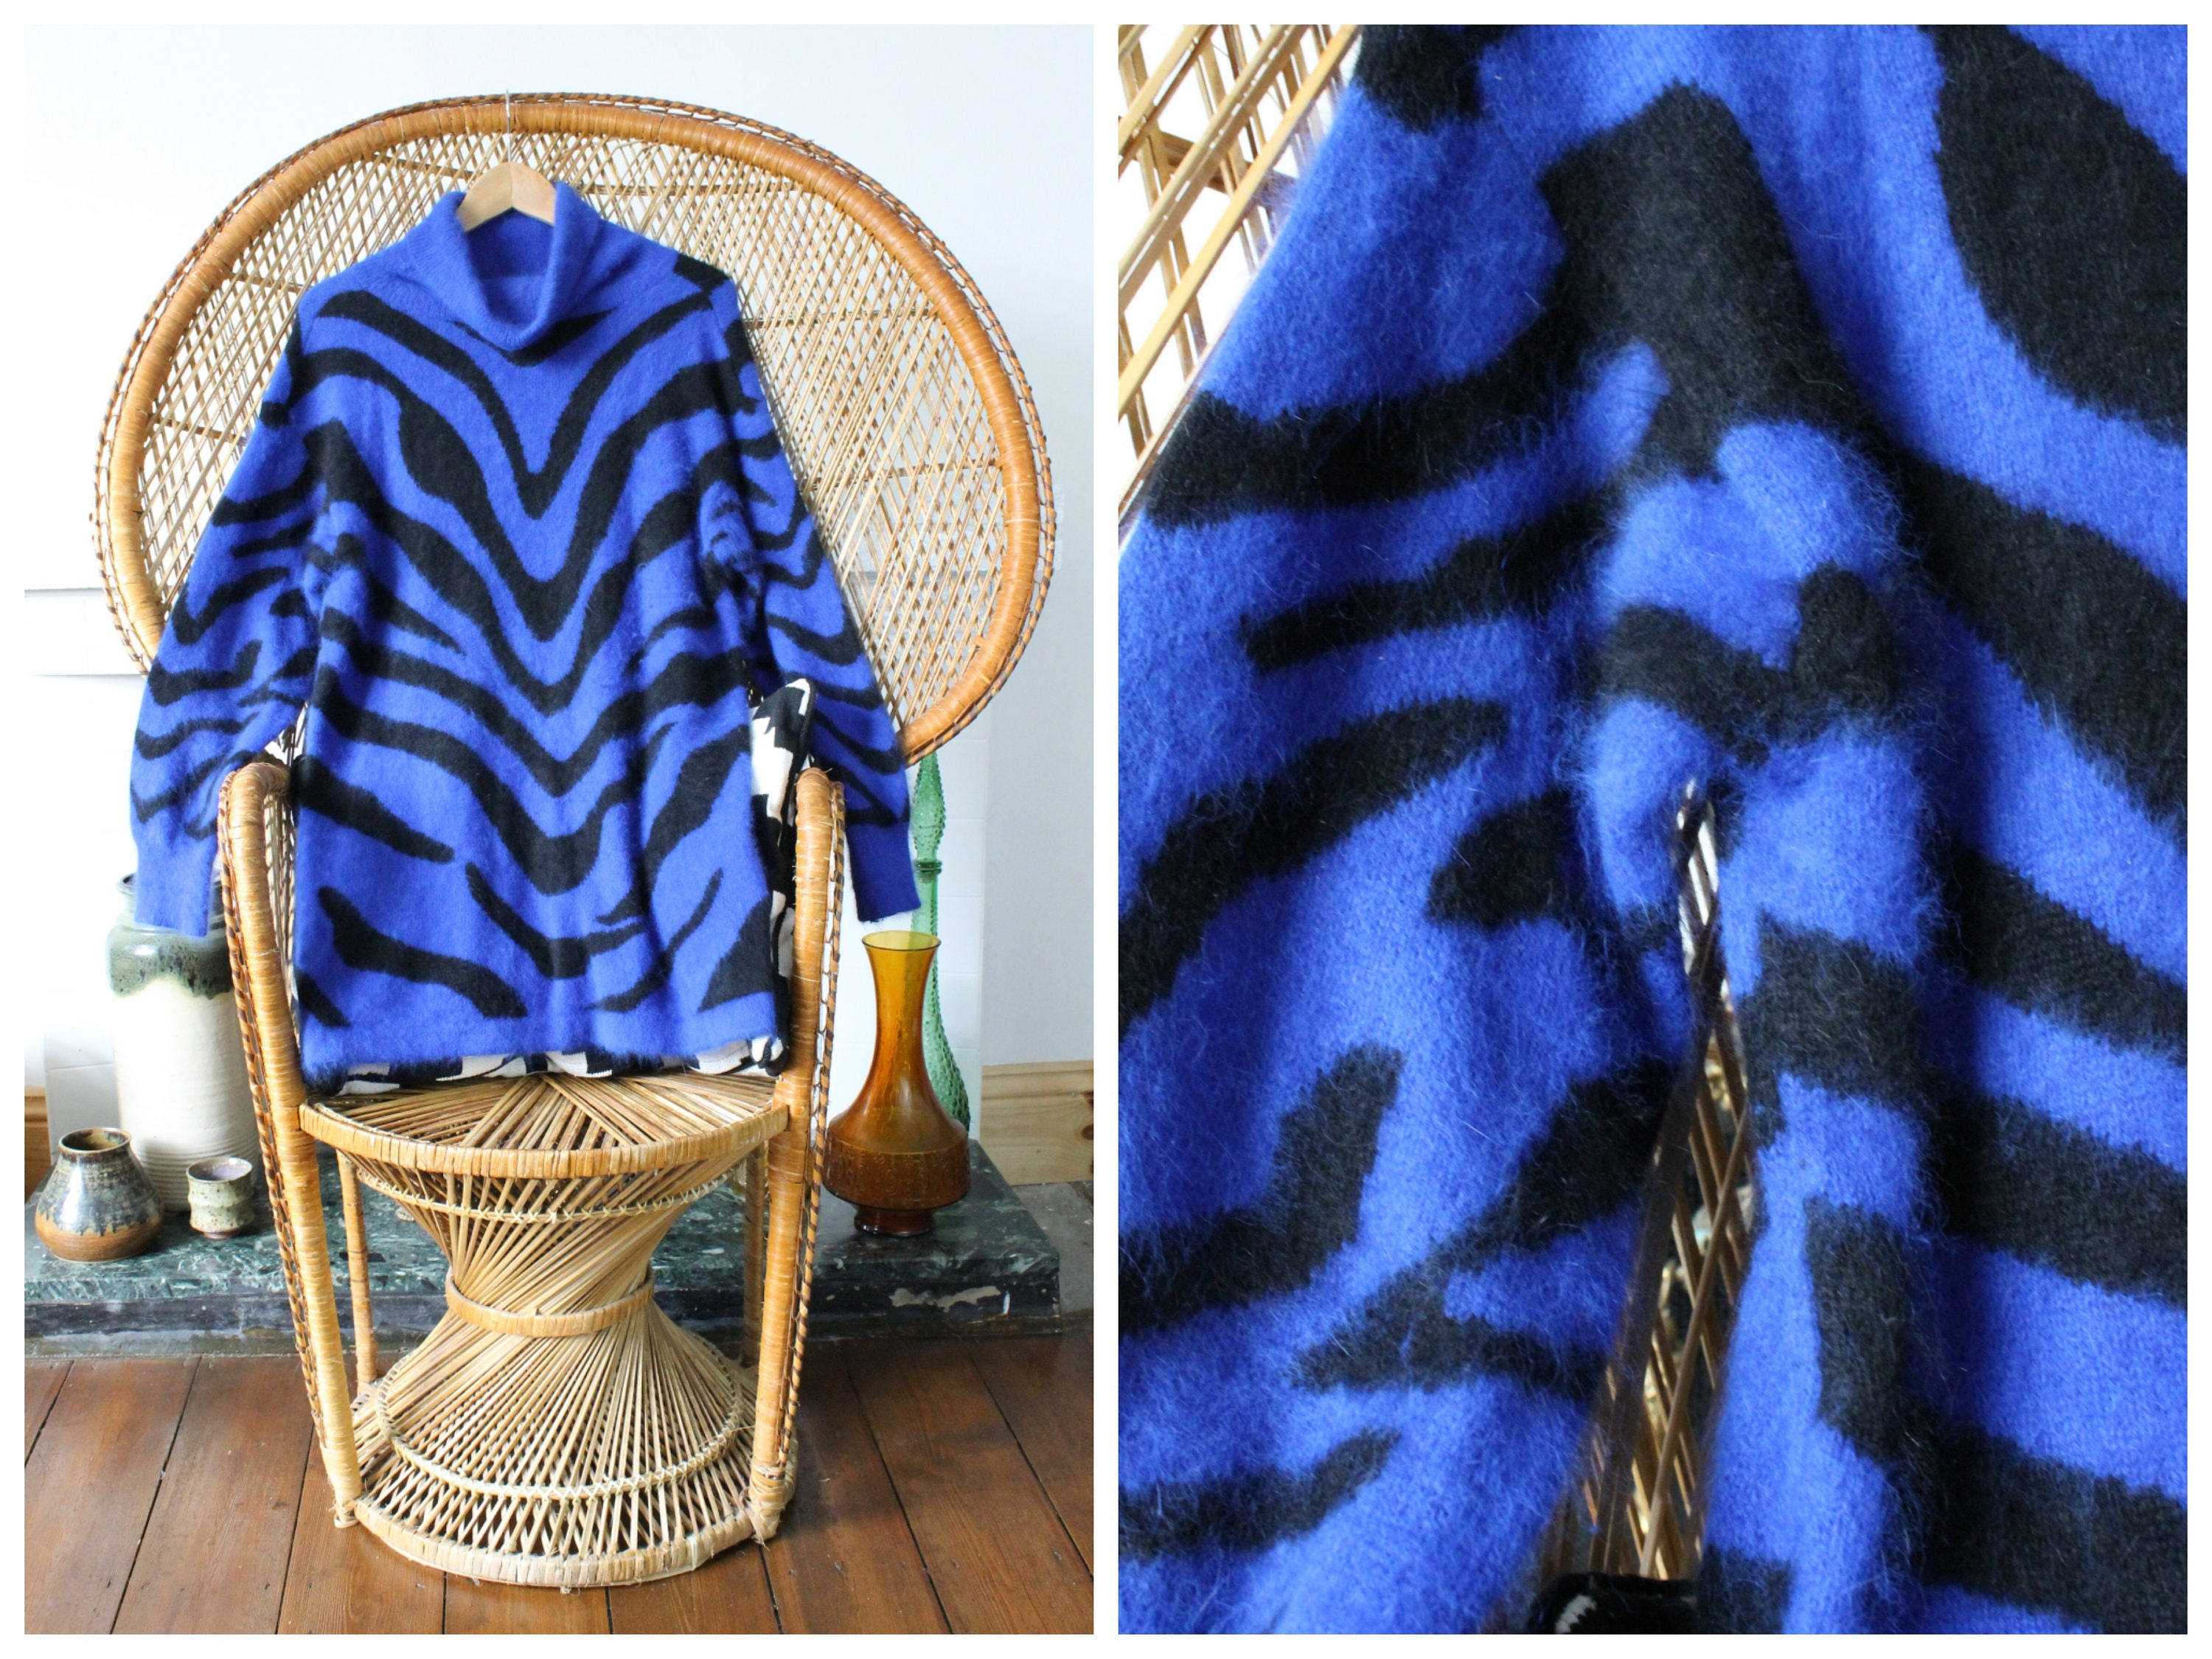 Vintage 90s Soft Blue and Black Angora Wool Knit Psychedelic Stripy Oversized Long Turtleneck Sweater Pullover Jumper Size Large UK 16